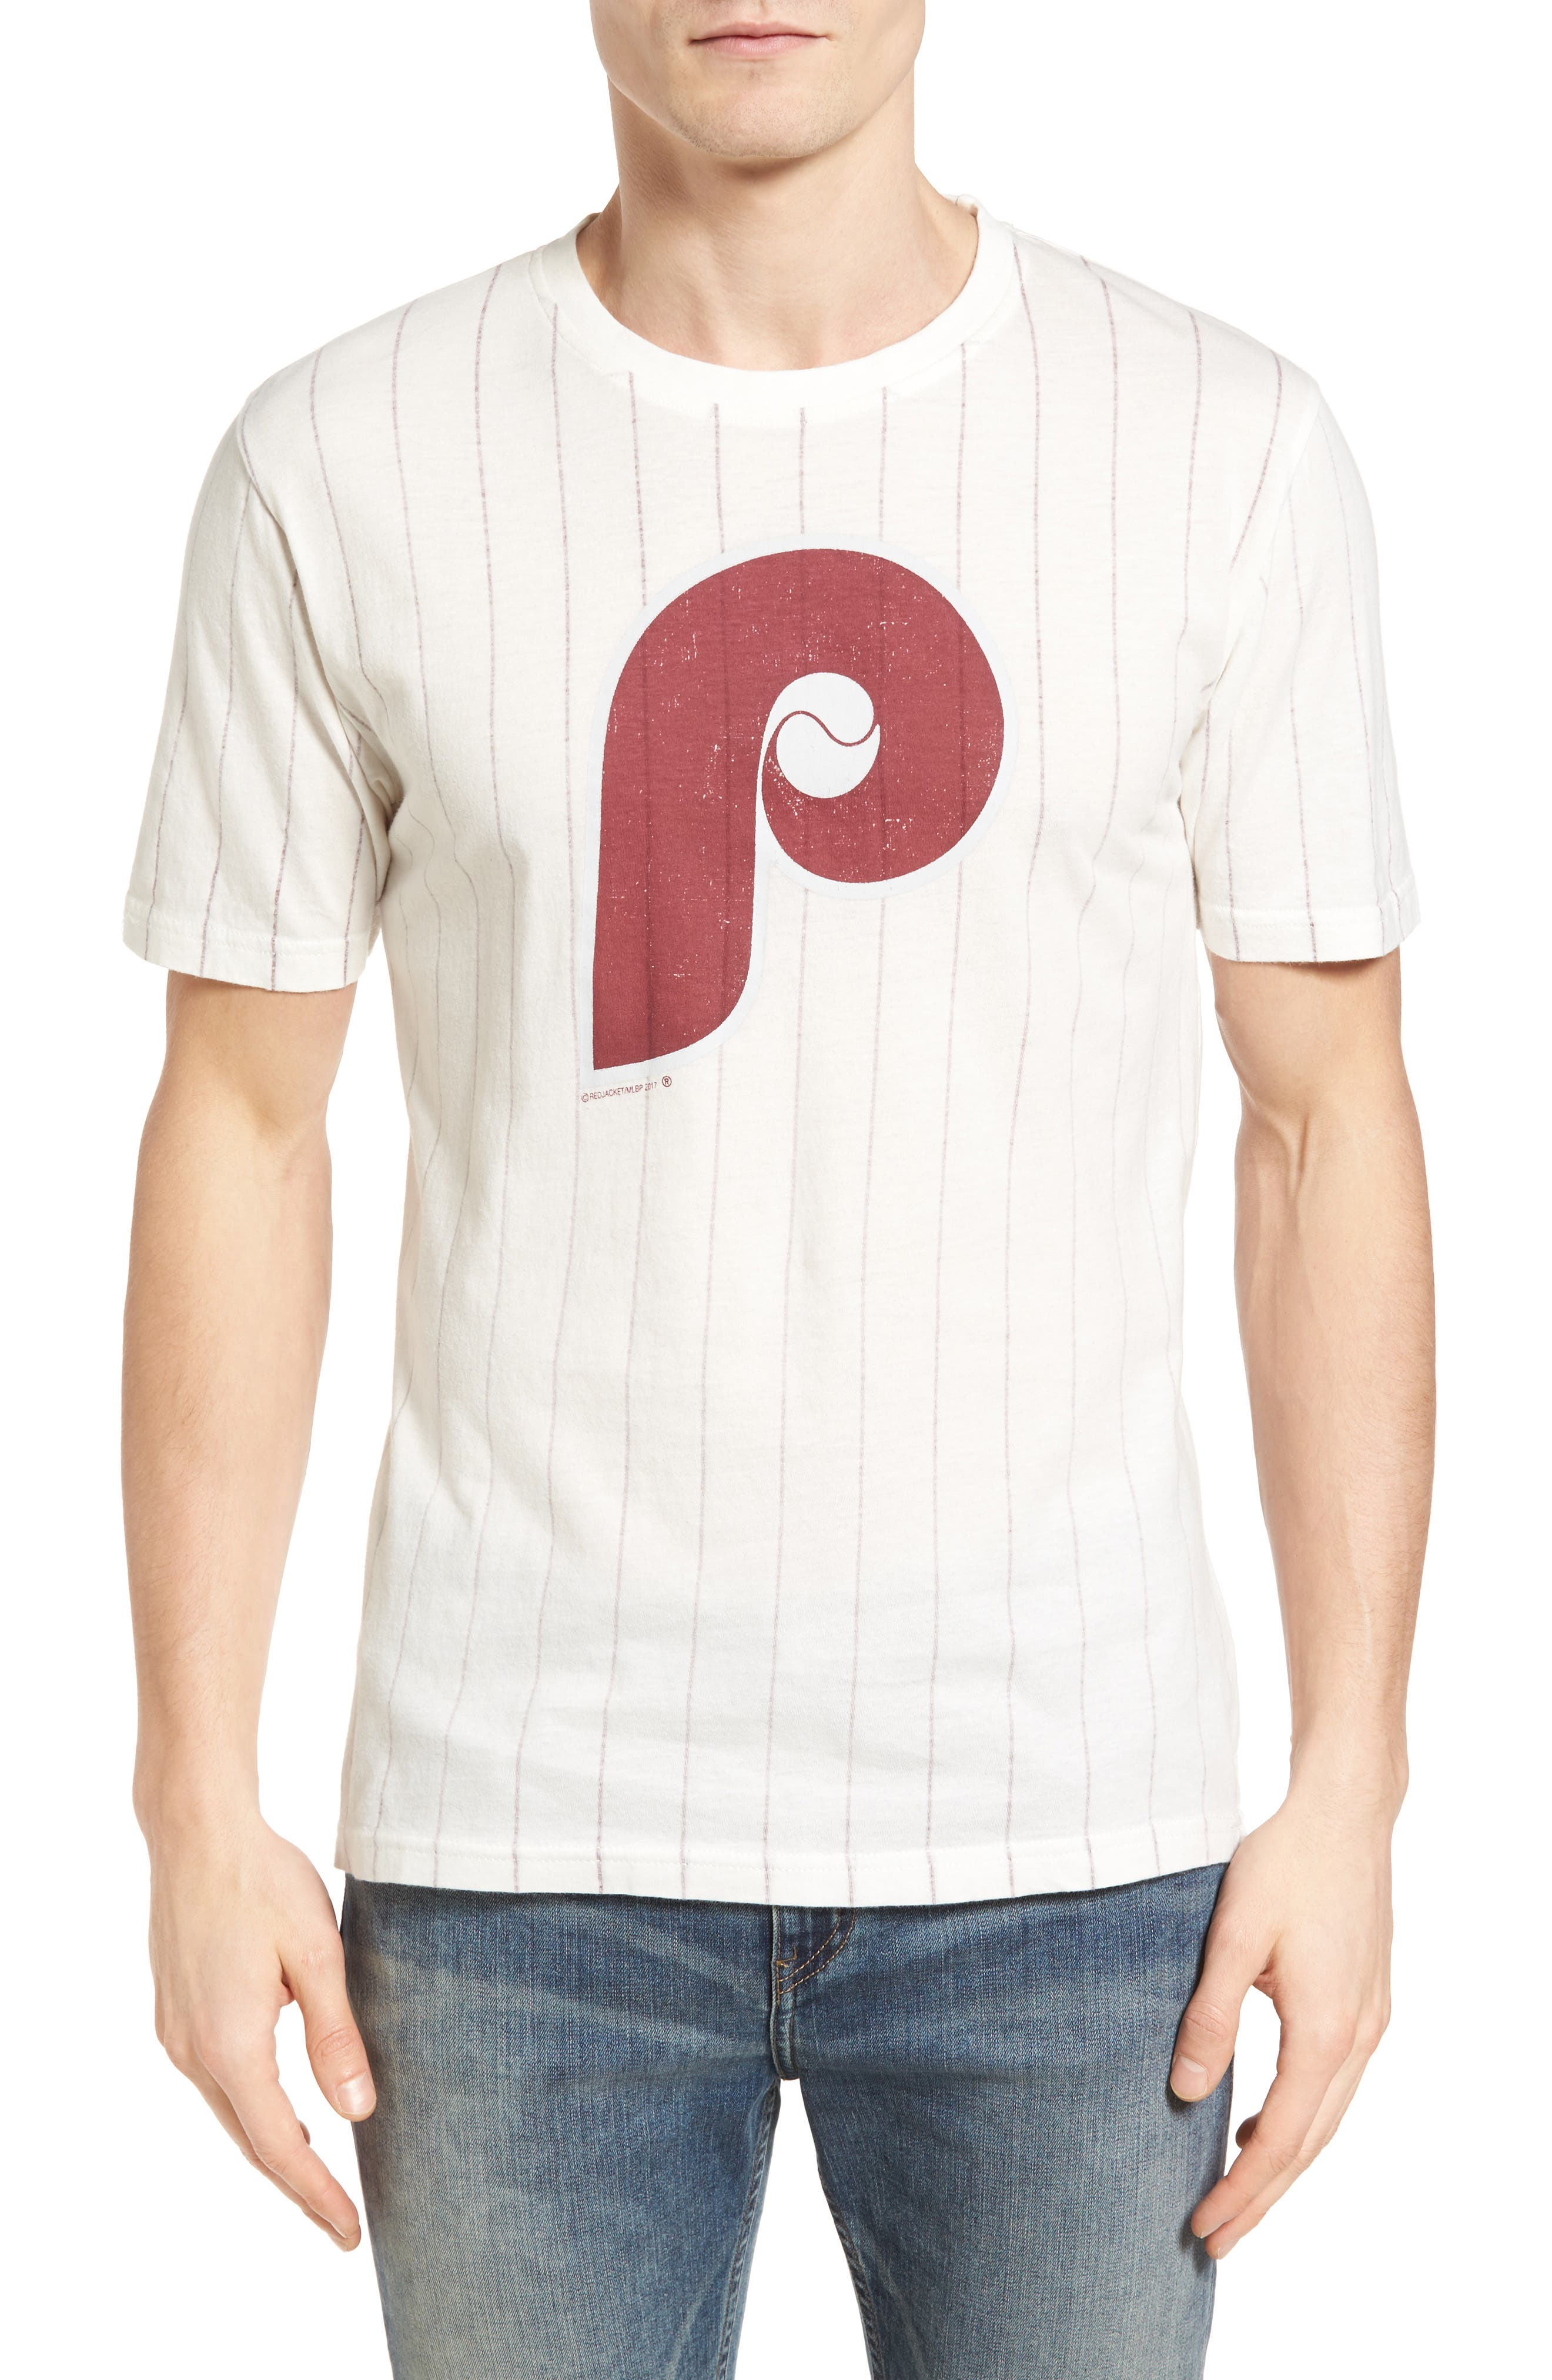 Brass Tack Philadelphia Phillies T-Shirt,                         Main,                         color, 182